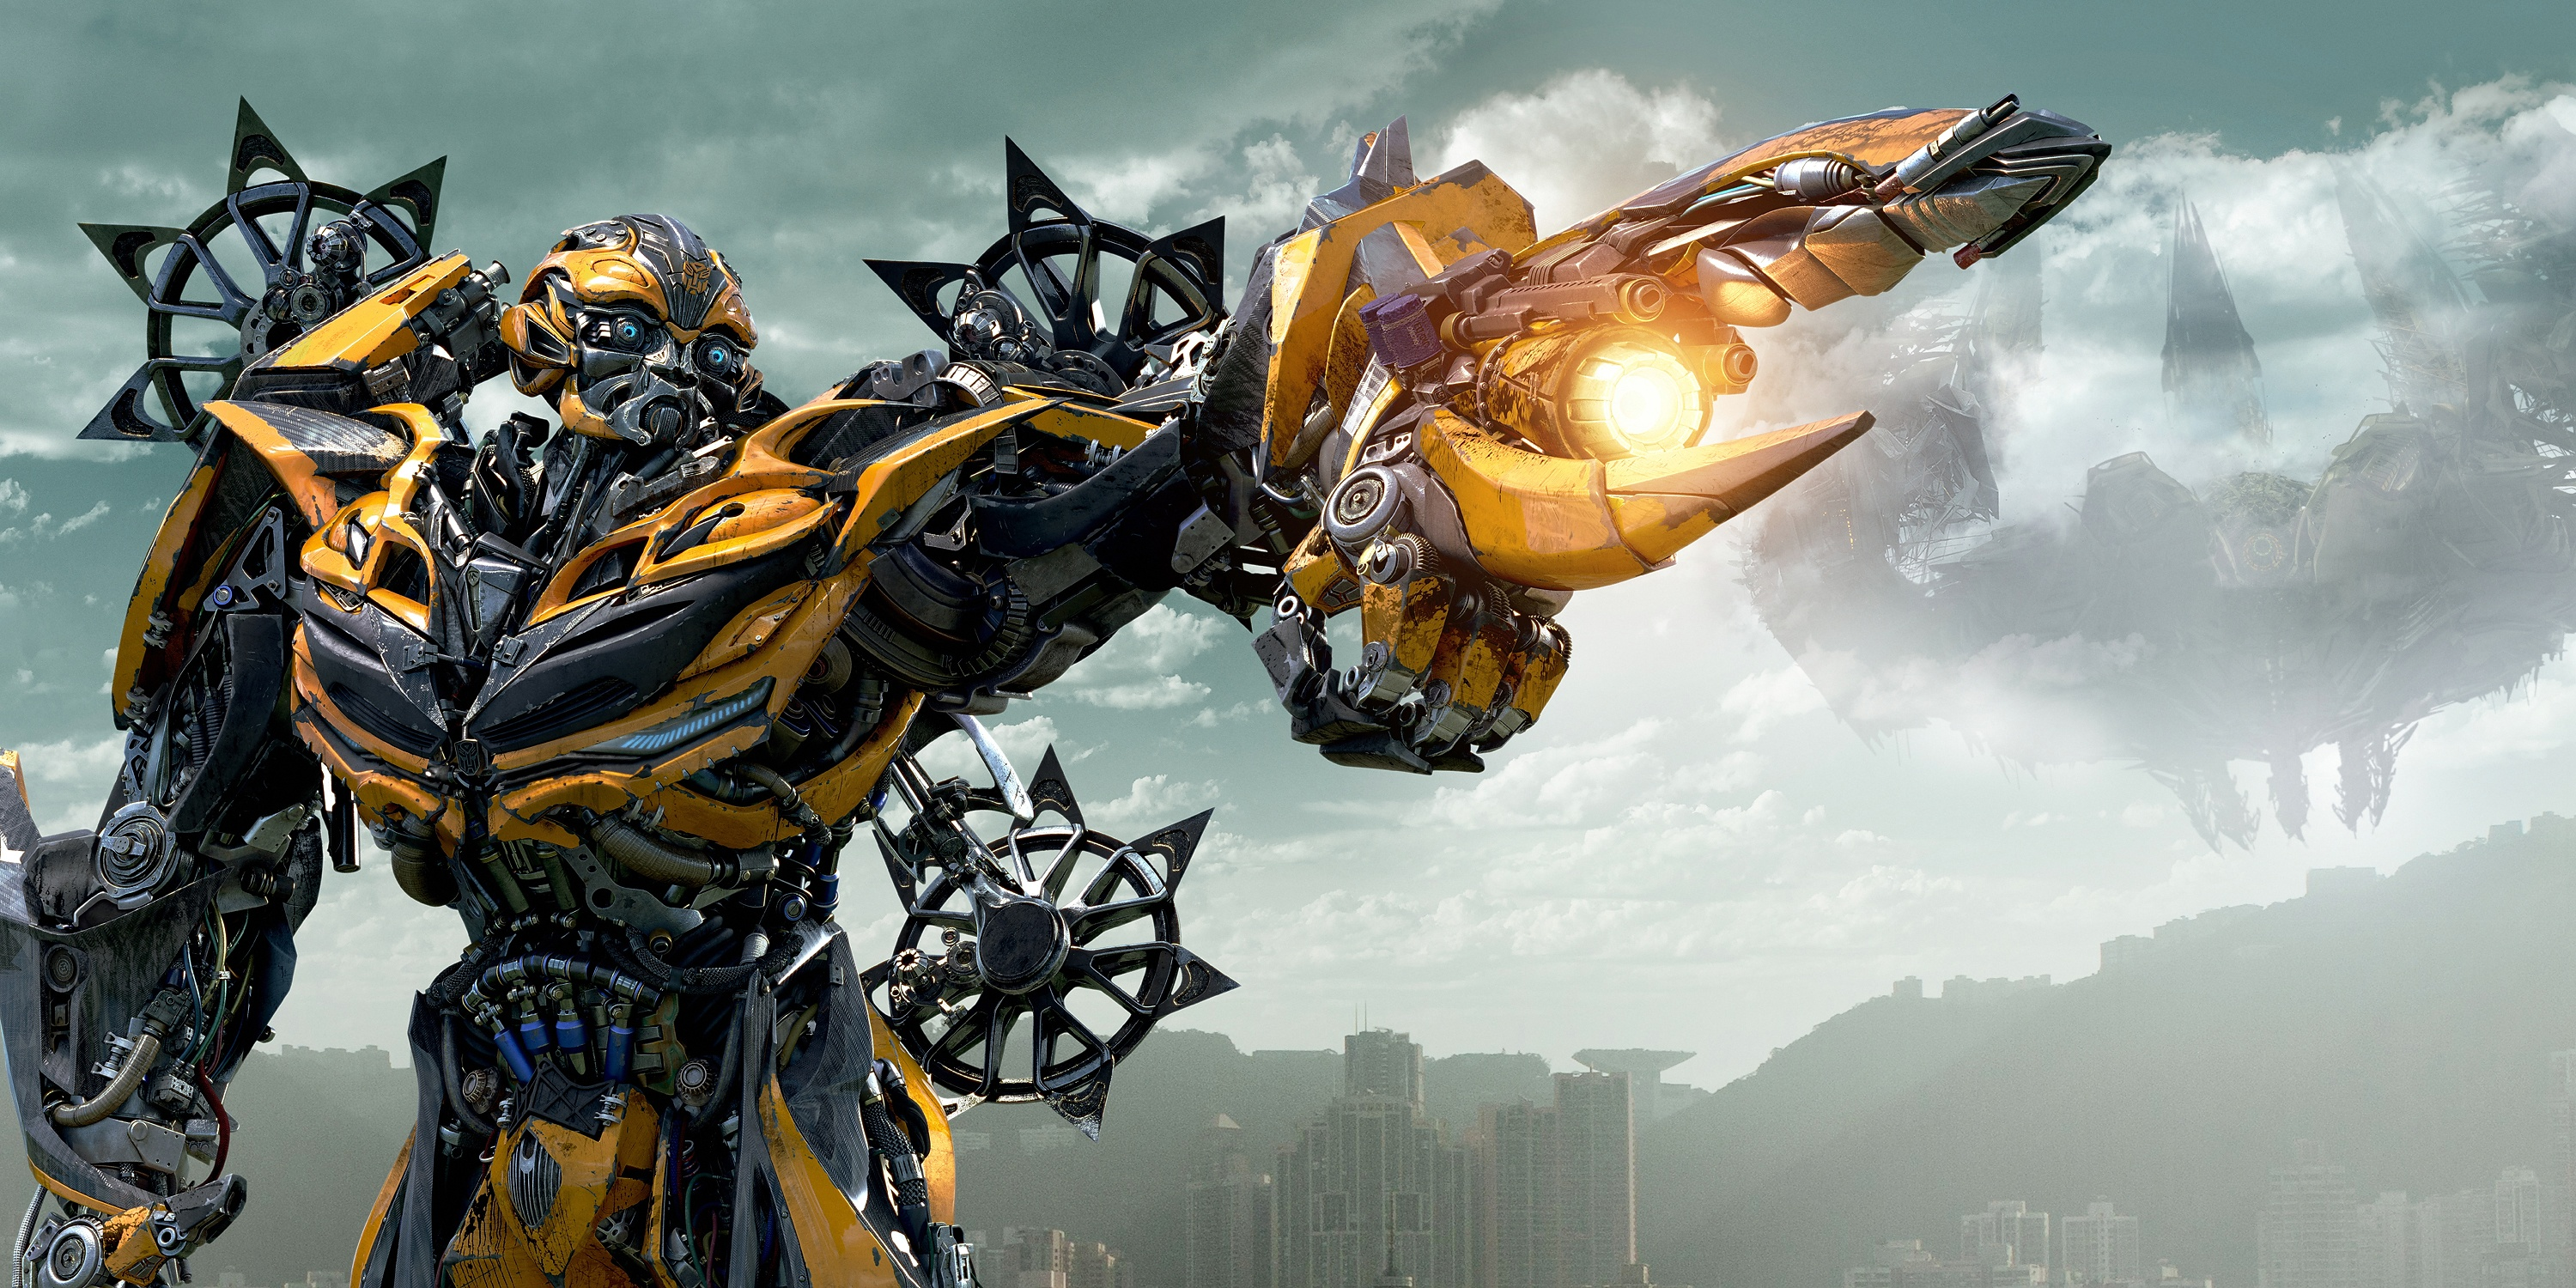 Bumblebee Transformers 4 Age Of Extinction Free HD